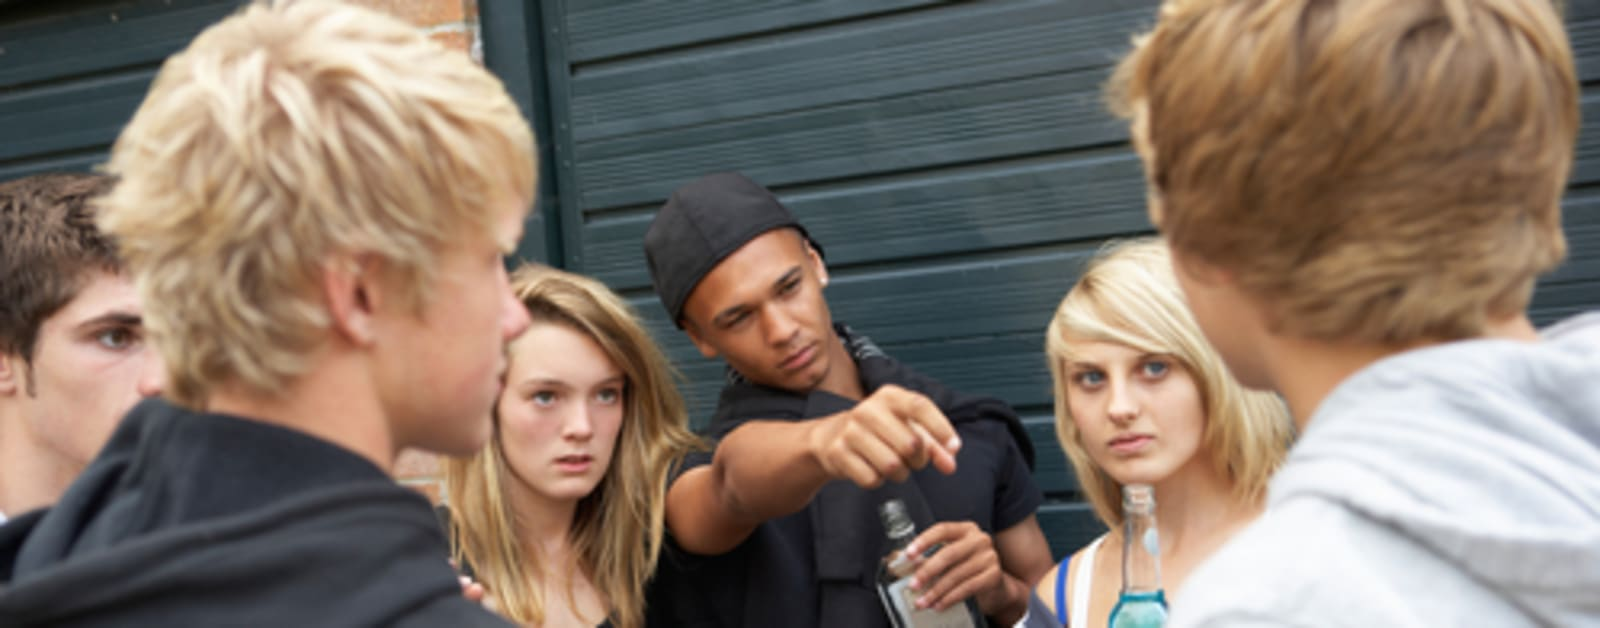 Midlands Youth Drug & Alcohol Support (MYDAS) – Under 18s